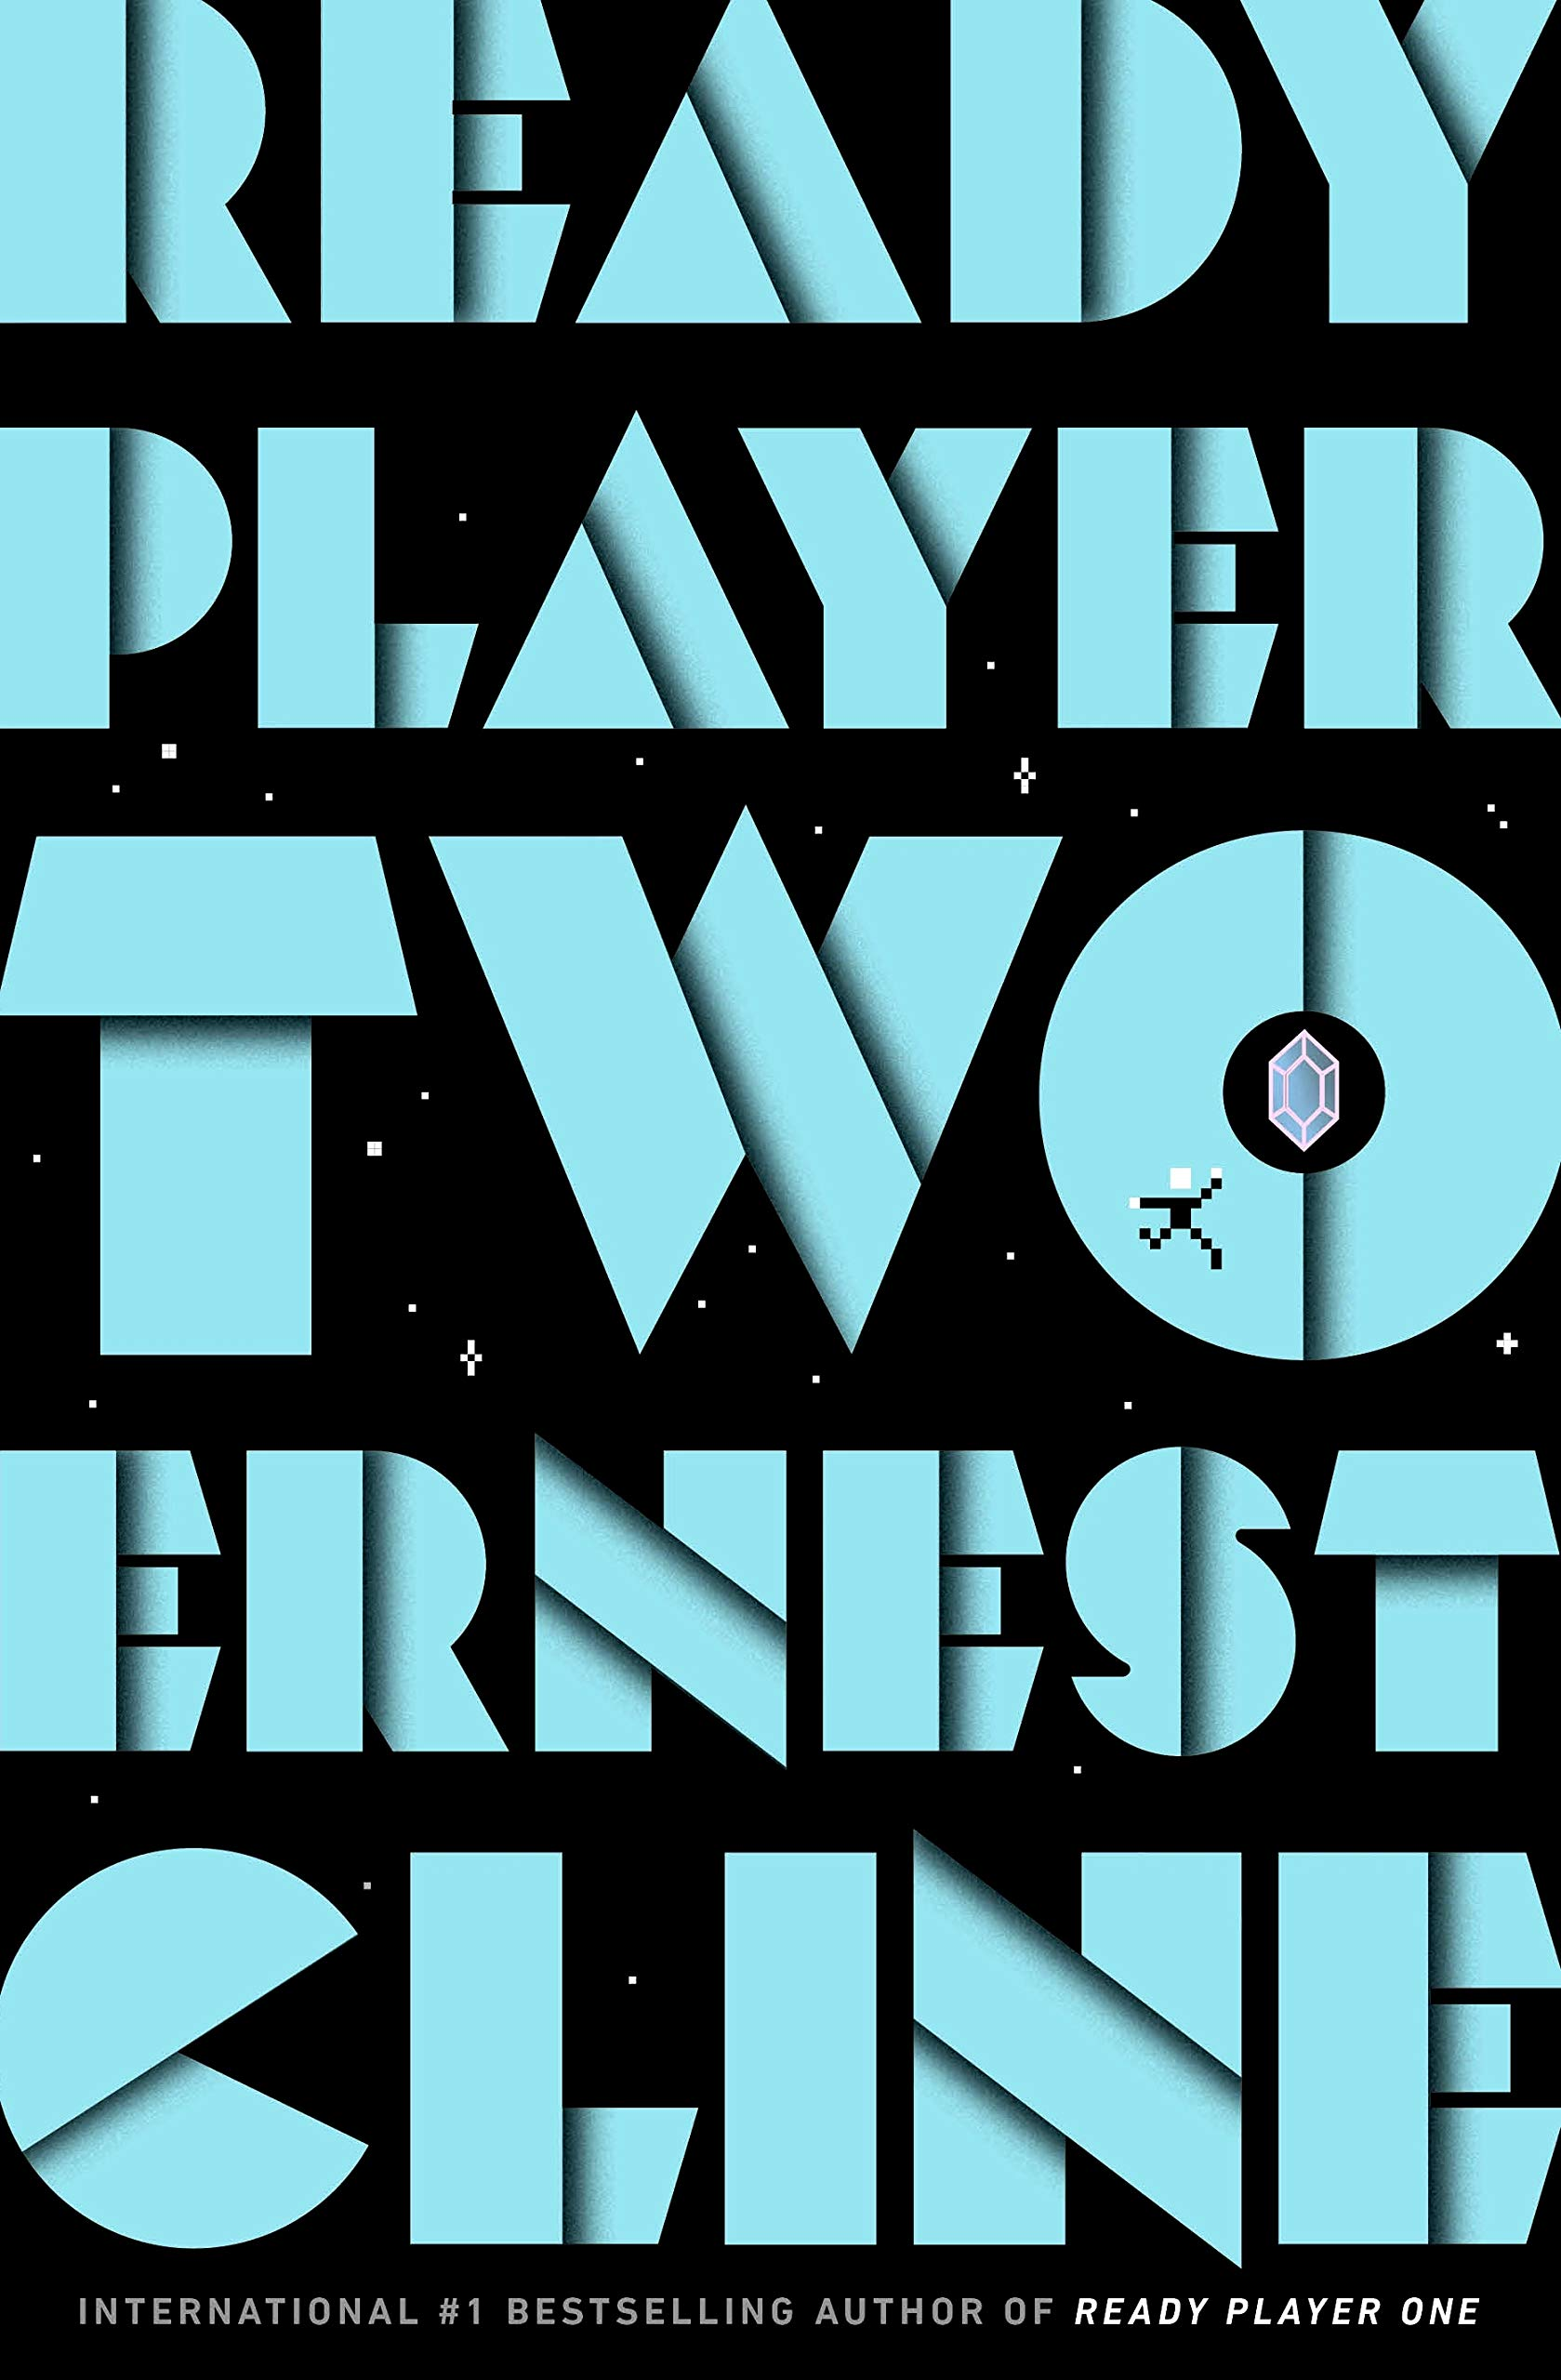 Ready Player Two: The highly anticipated sequel to READY PLAYER ONE:  Amazon.co.uk: Cline, Ernest: 9781780897431: Books